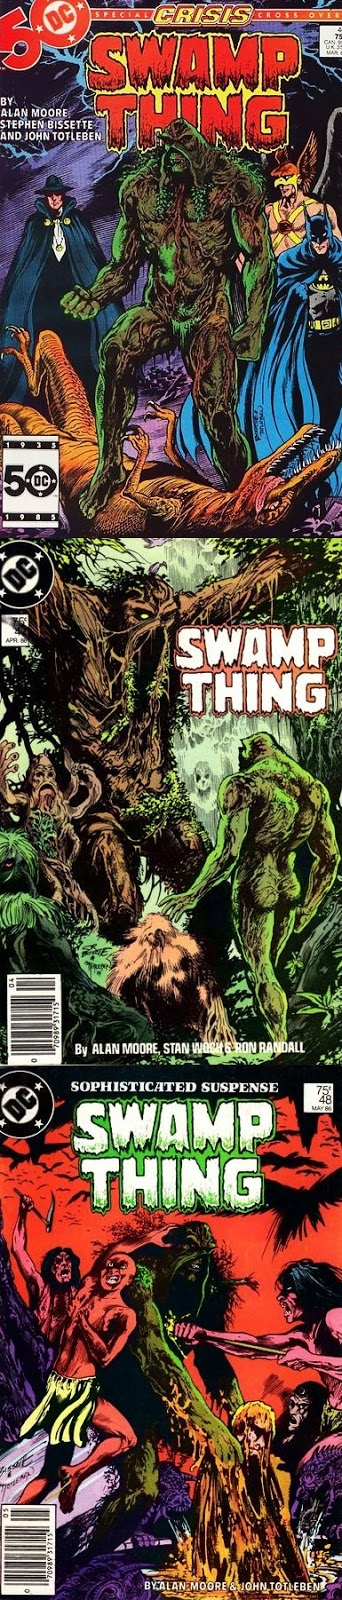 Swamp Thing # 46, 47 48 - Moore, Bissette, Totleben Woch